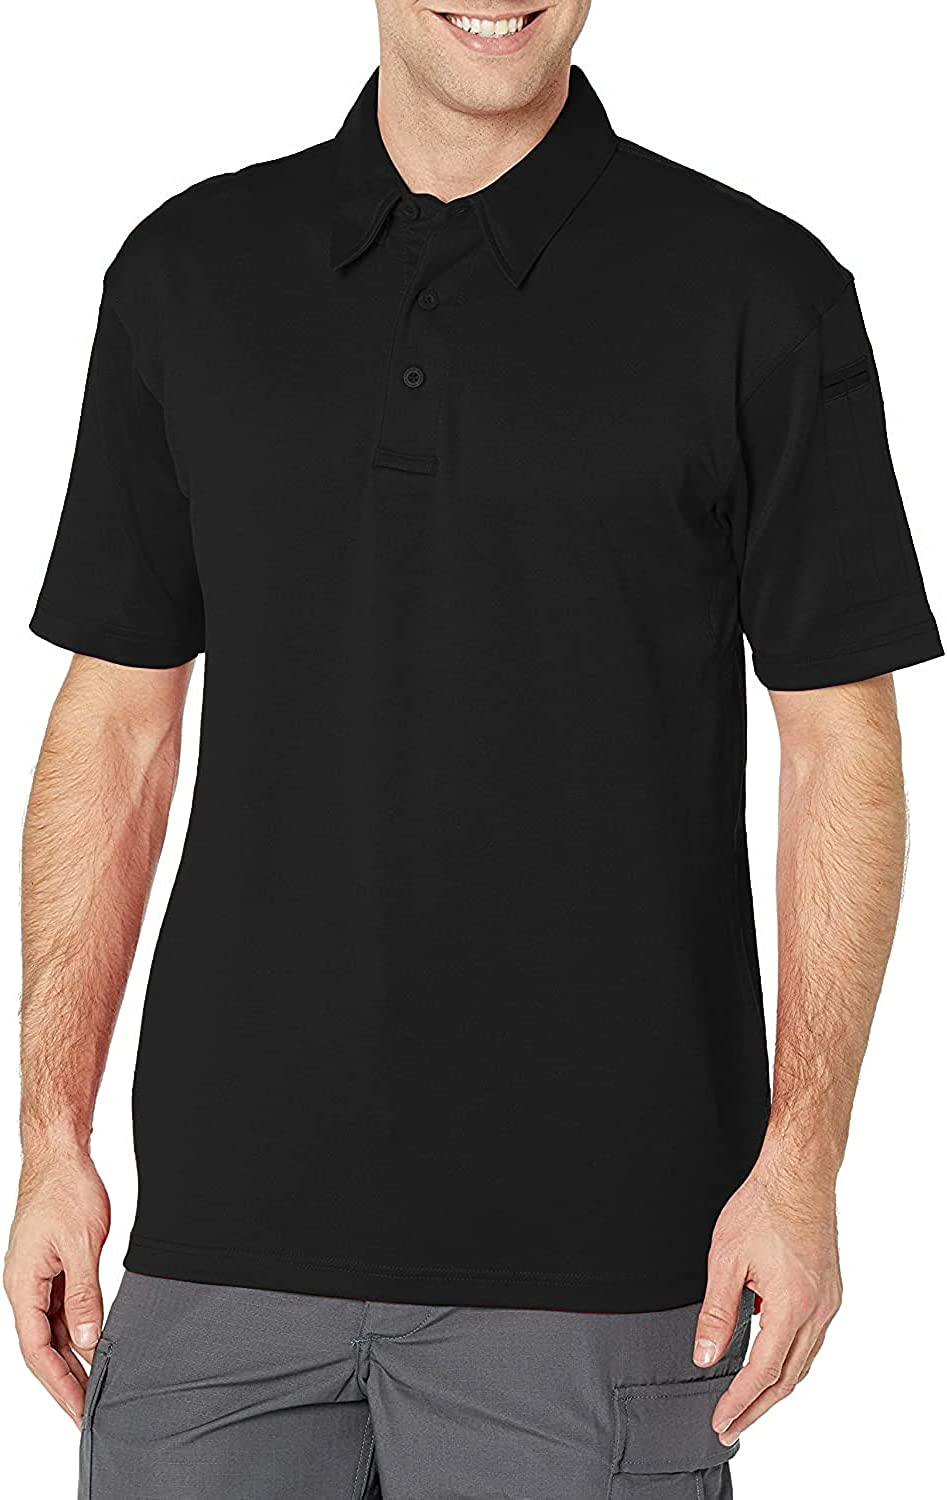 Propper Men's I.C.E. High quality Cash special price new Short Sleeve Polo Performance Shirt